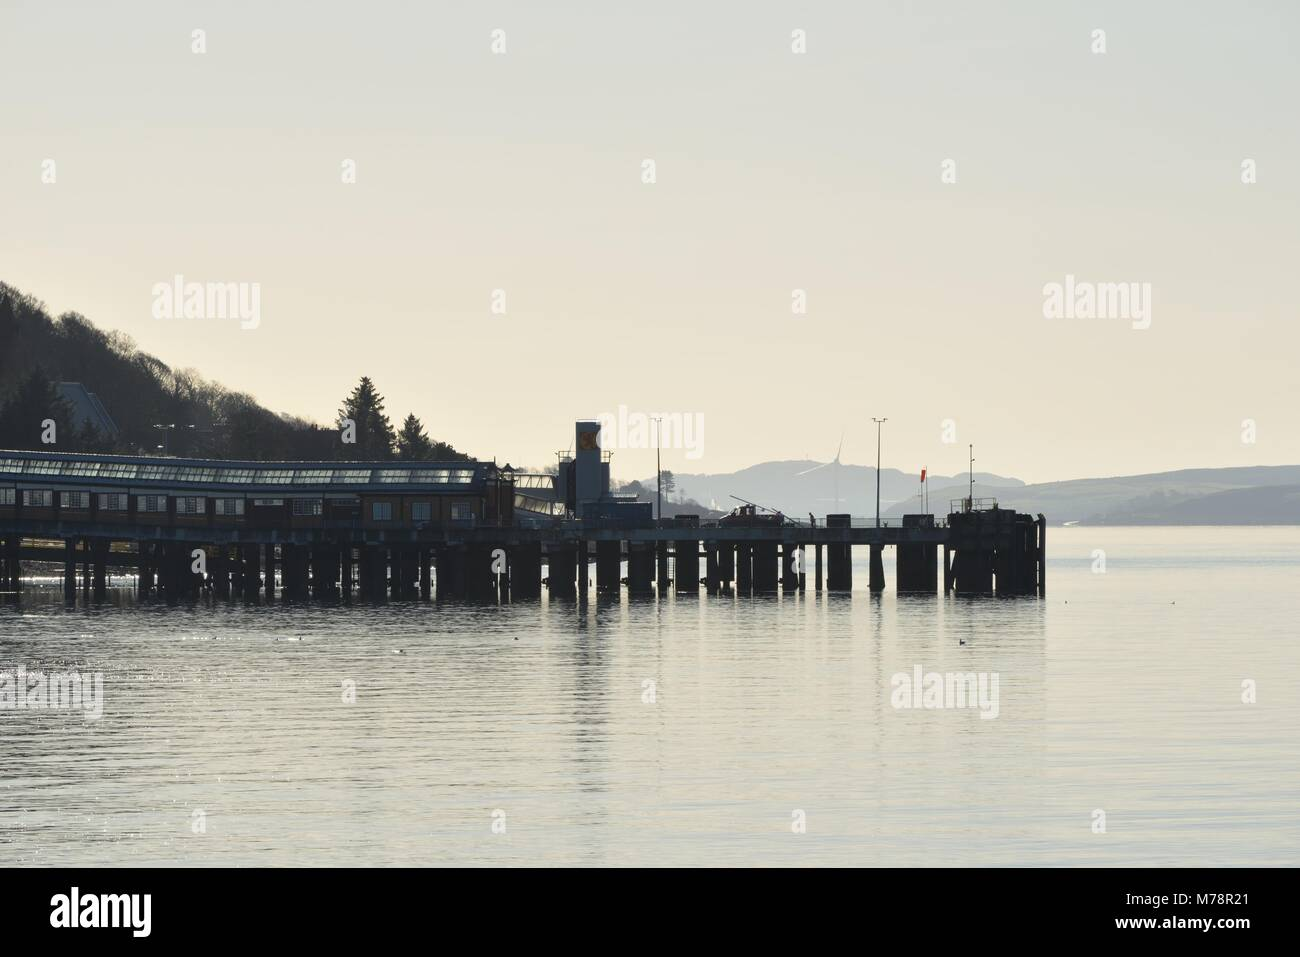 Wemyss Bay pier on the Firth of Clyde, west coast of Scotland, UK - Stock Image